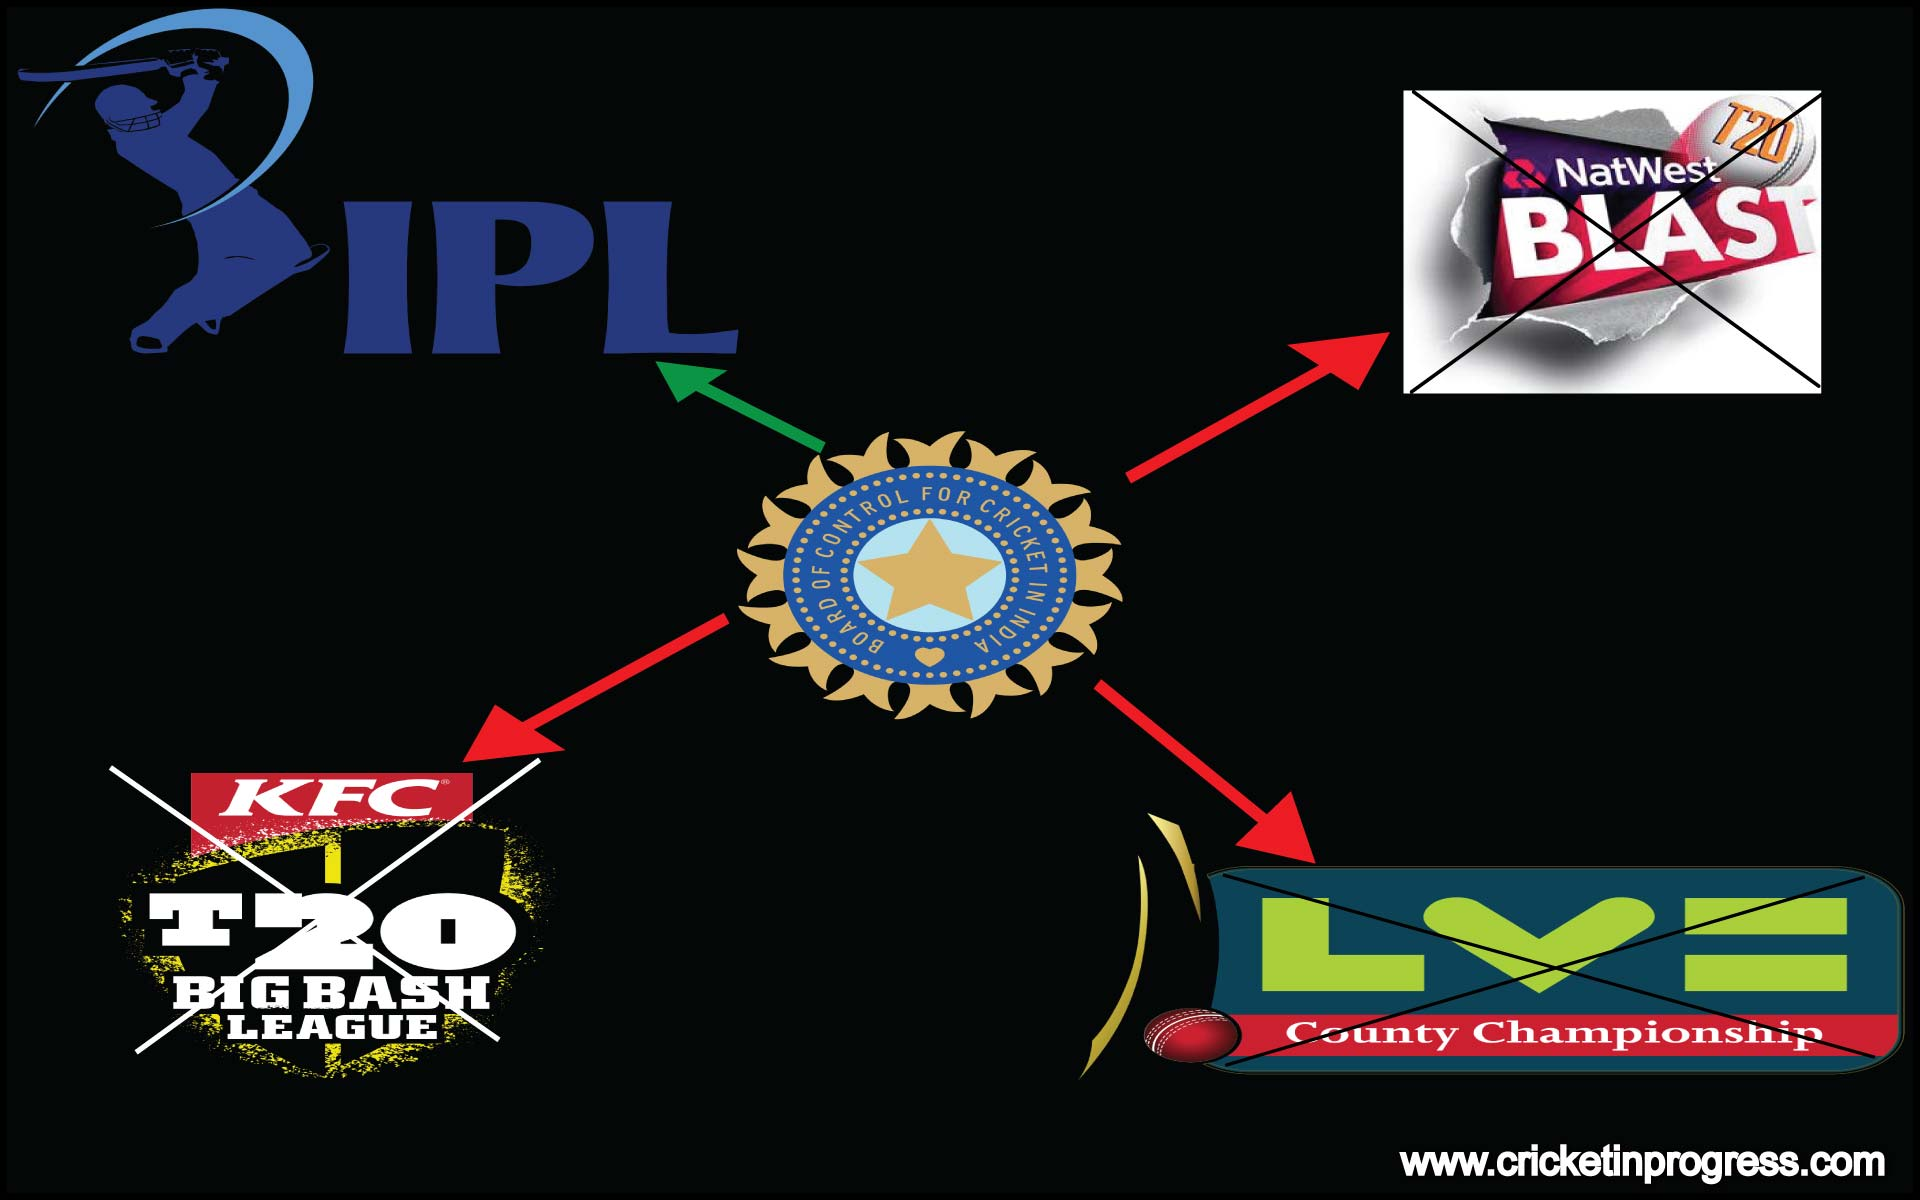 Why are Indian cricketers not allowed to play in other T20 leagues Should they be